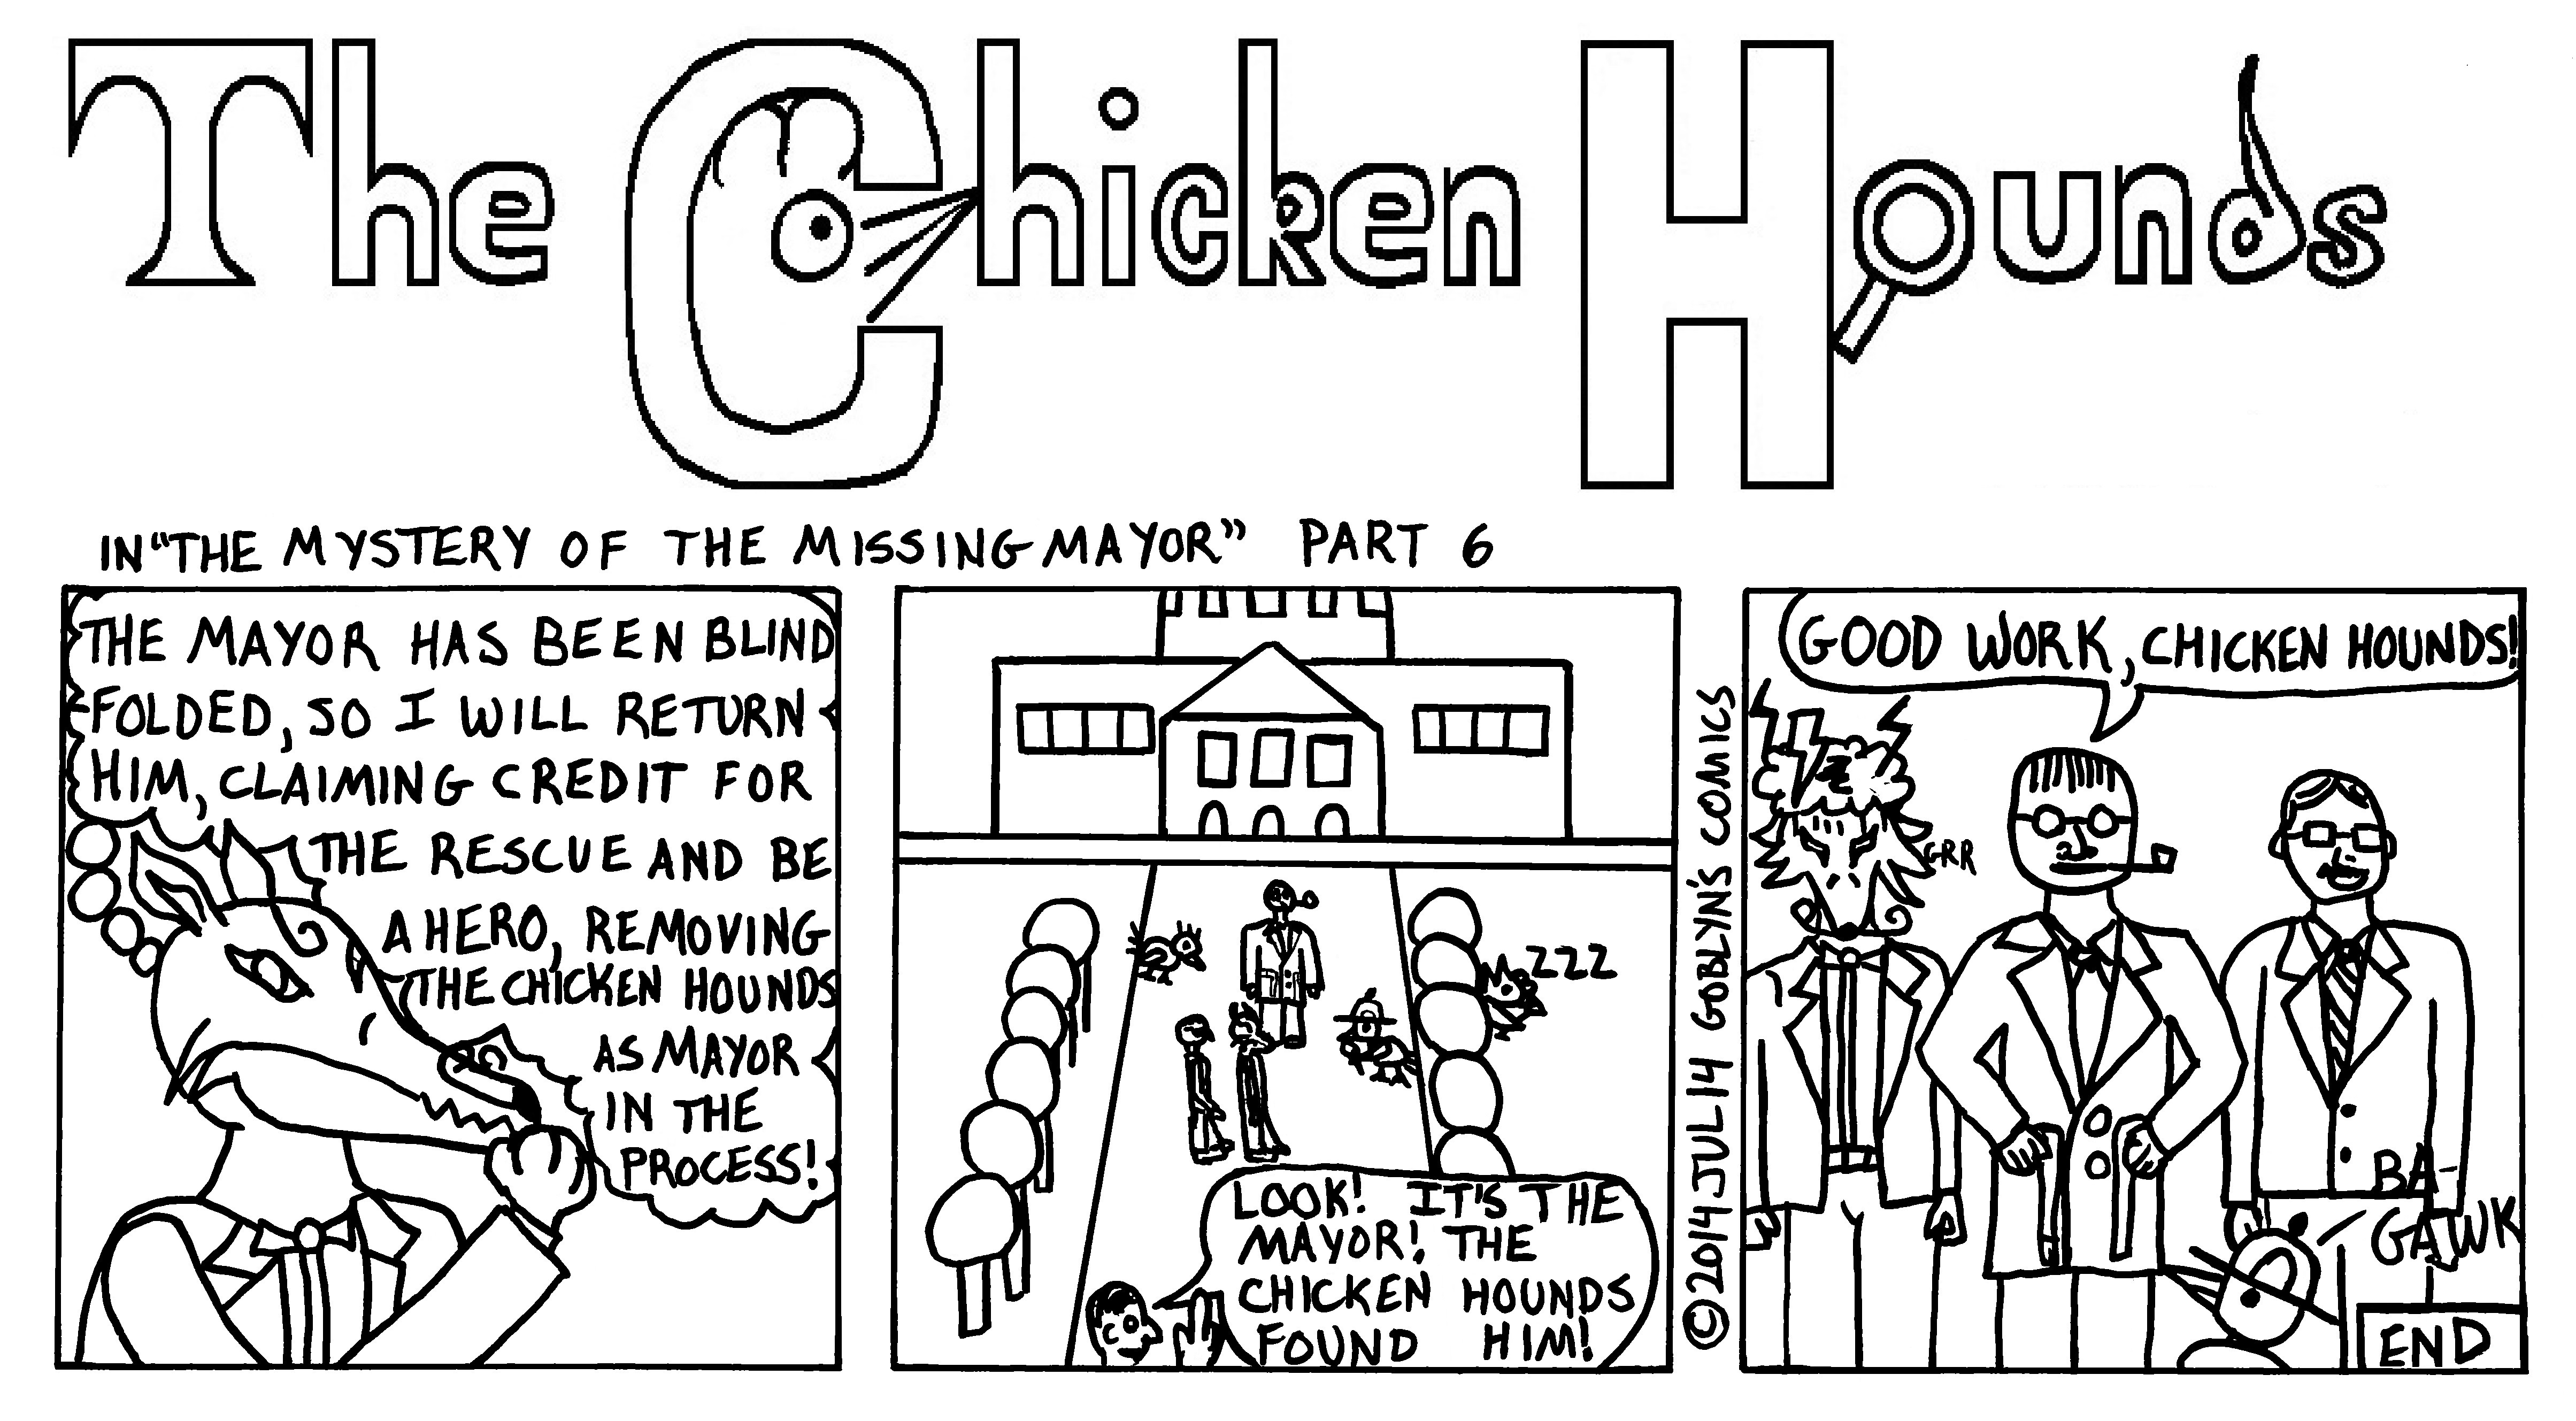 "The Chicken Hounds, San Francisco's Greatest Detectives, in ""The Mystery of the Missing Mayor"" Part 6. Francisco Fox, nemesis of the Chicken Hounds. tries to take credit for rescuing the mayor but the Commissioner says ""Good work, Chicken Hounds!"""